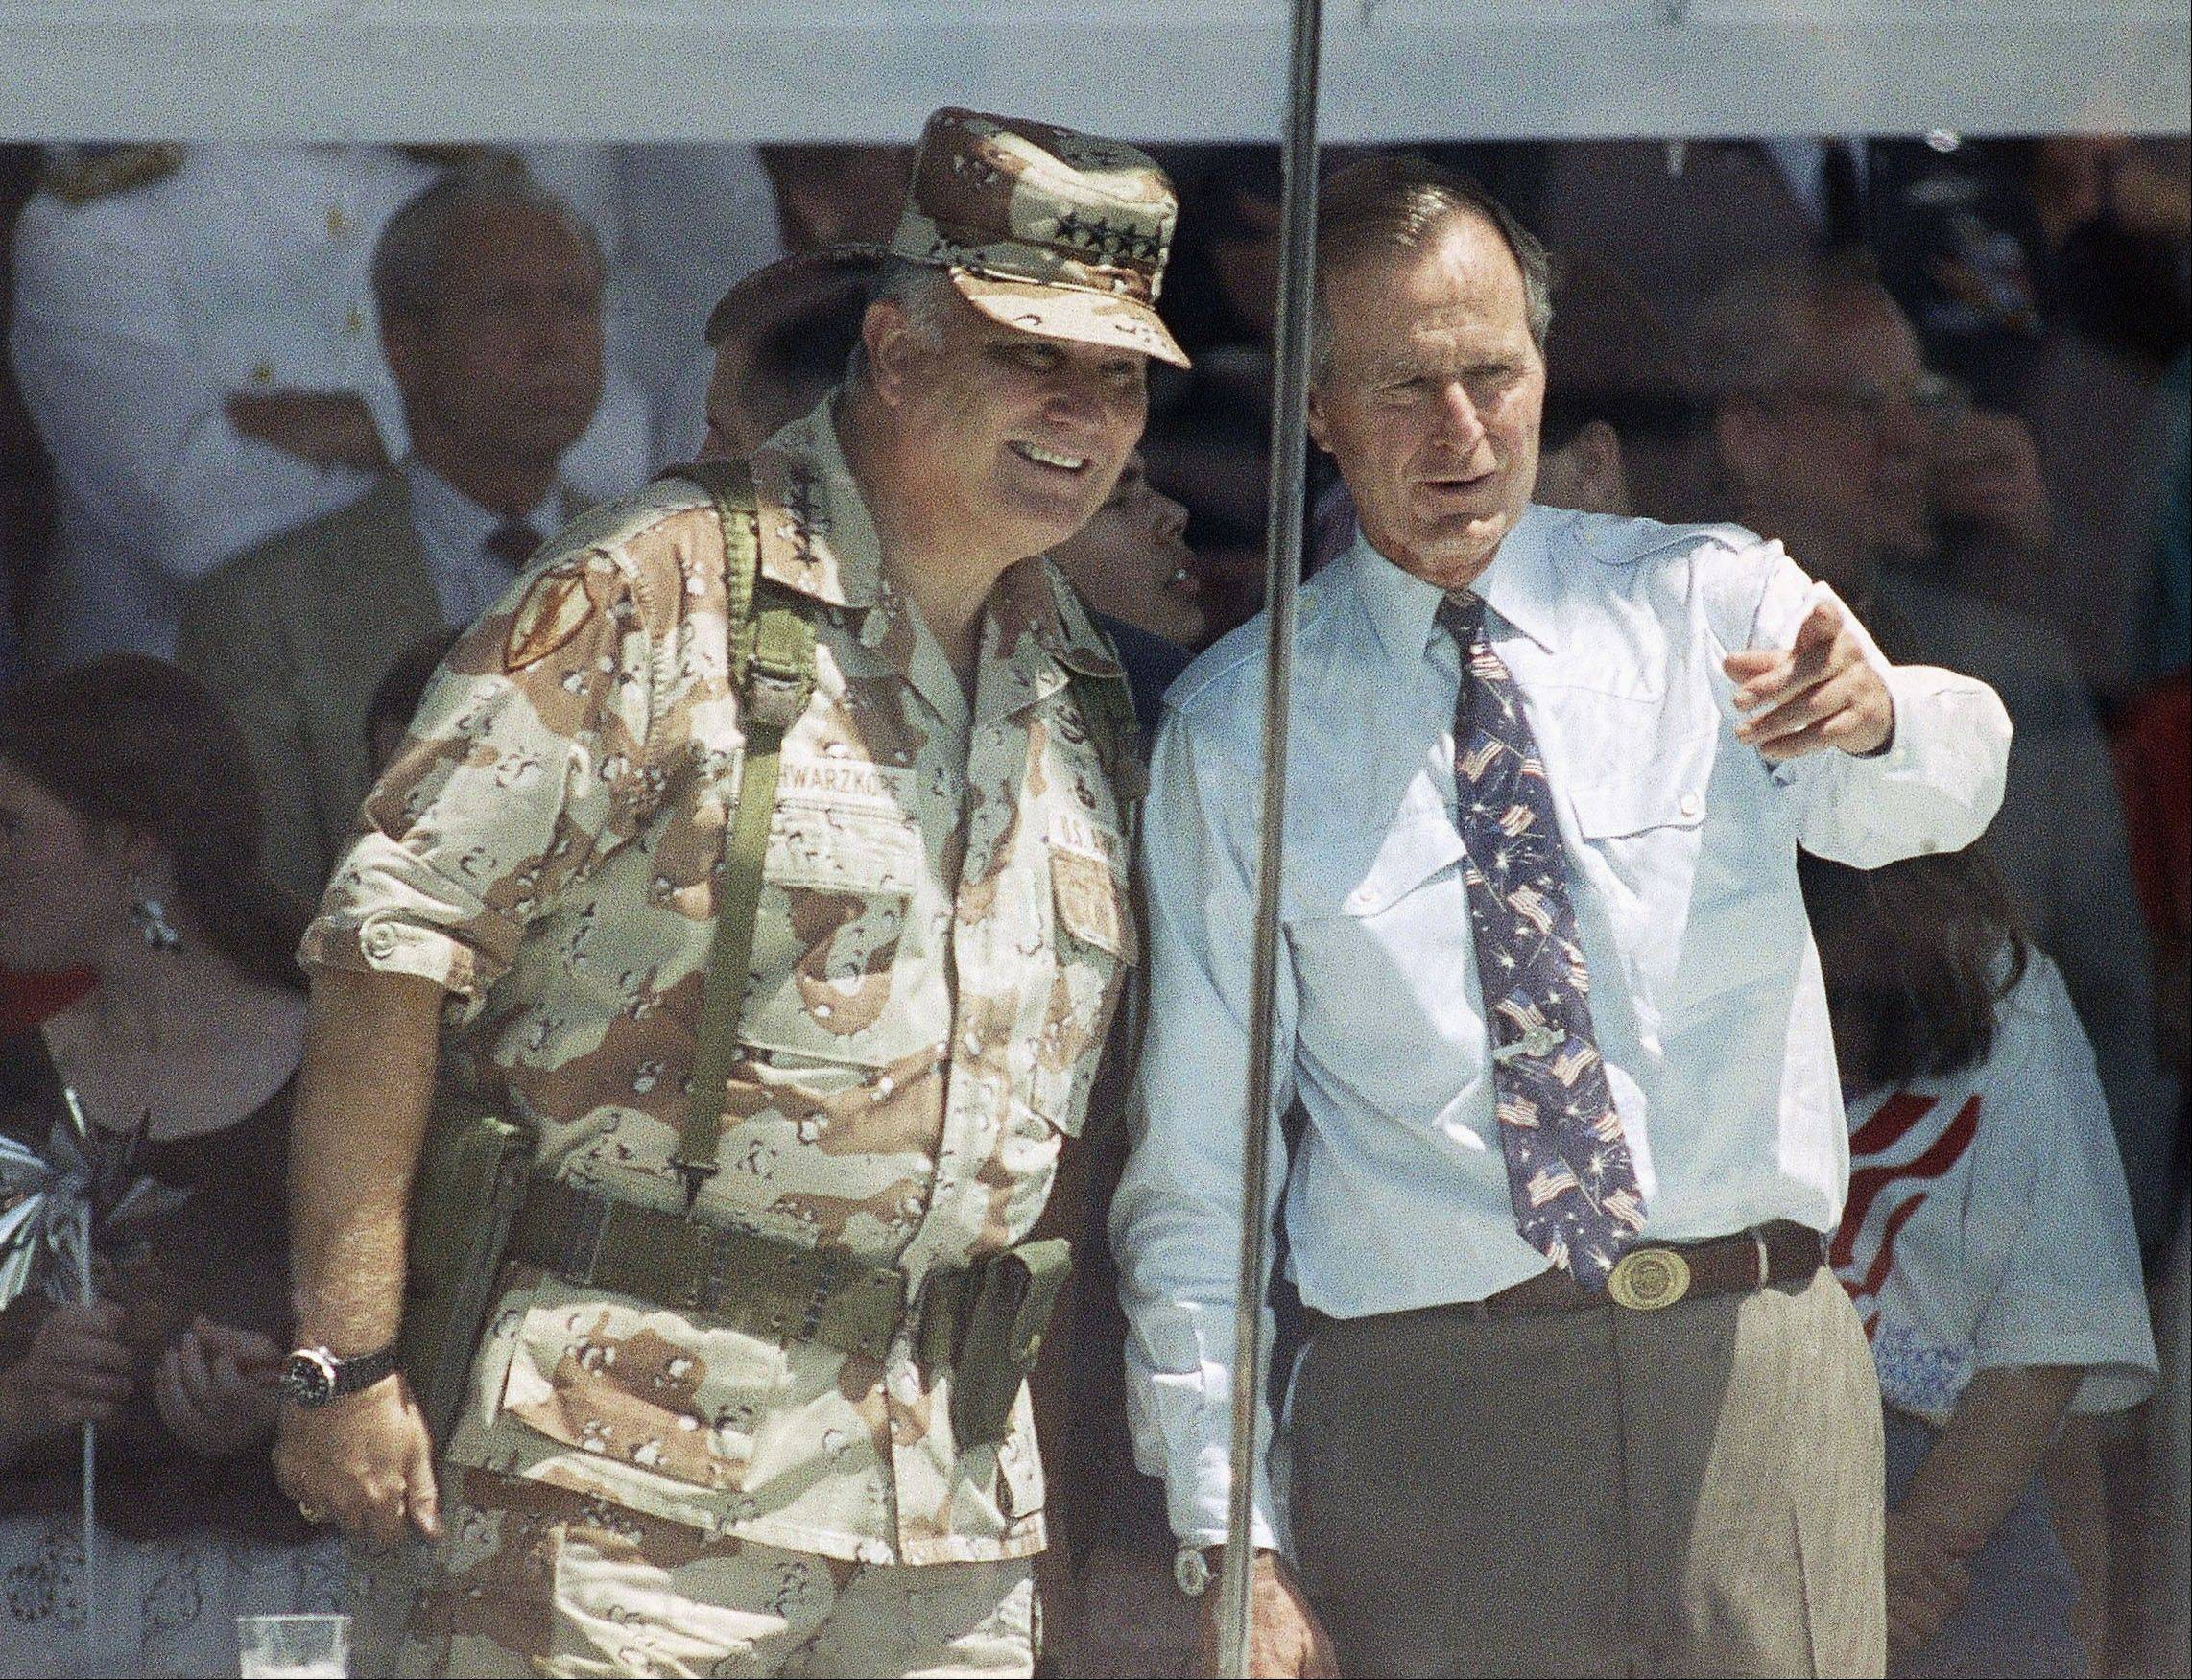 In this June 8, 1991, file photo, Gen. Norman Schwarzkopf and President George H.W. Bush watch the National Victory Parade from a viewing stand in Washington. Schwarzkopf led his troops in the parade, and then joined Bush in the reviewing stand. Schwarzkopf died Thursday, Dec. 27, 2012 in Tampa, Fla. He was 78.